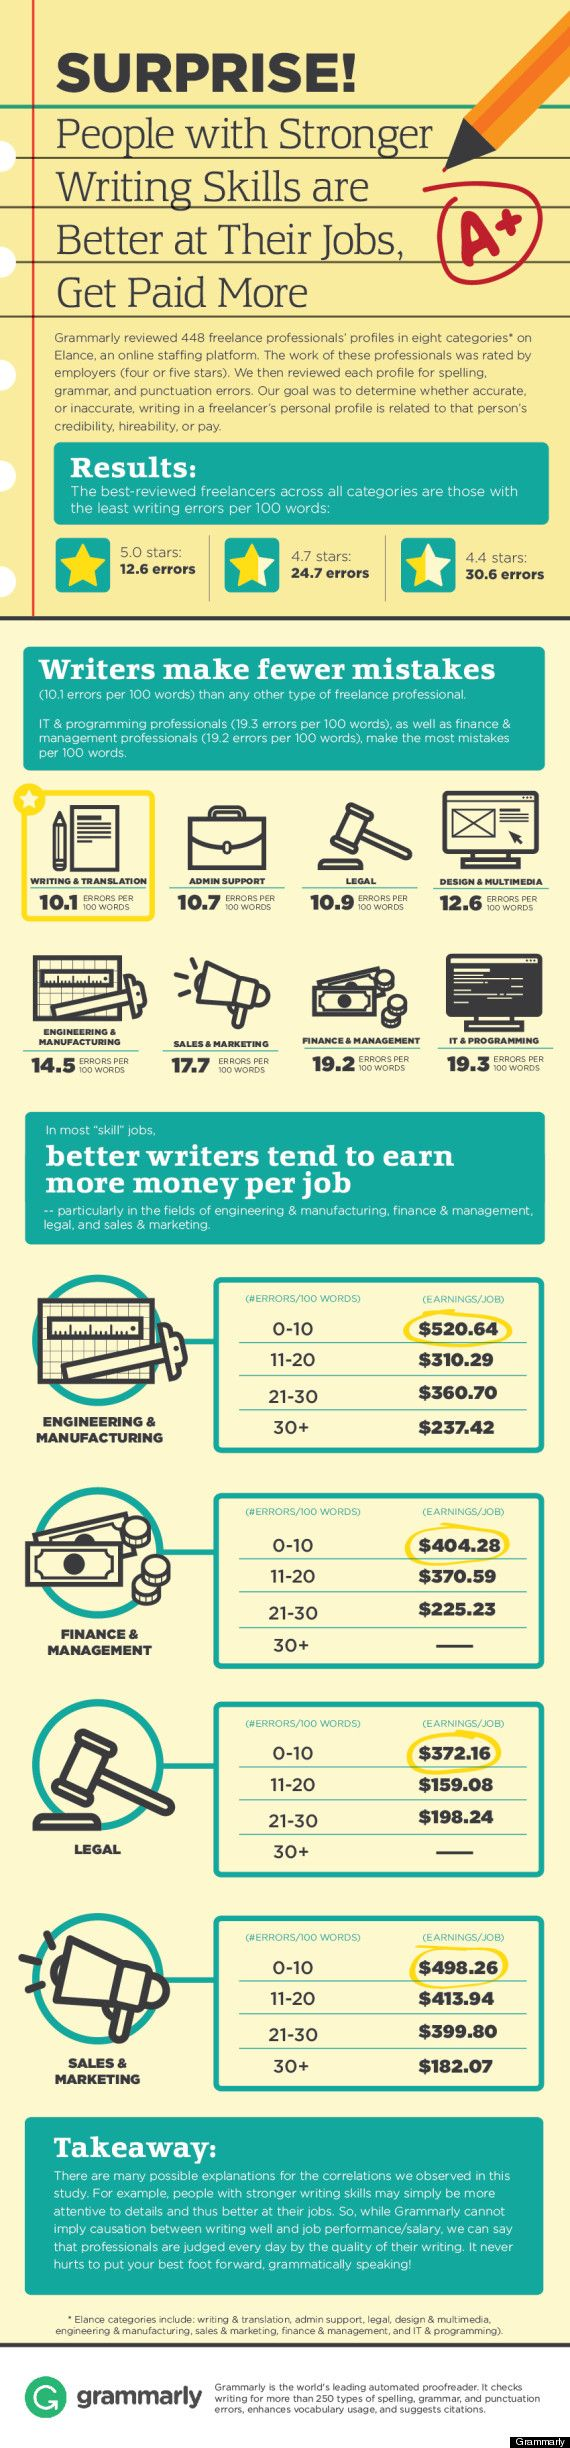 Better writers get better jobs.